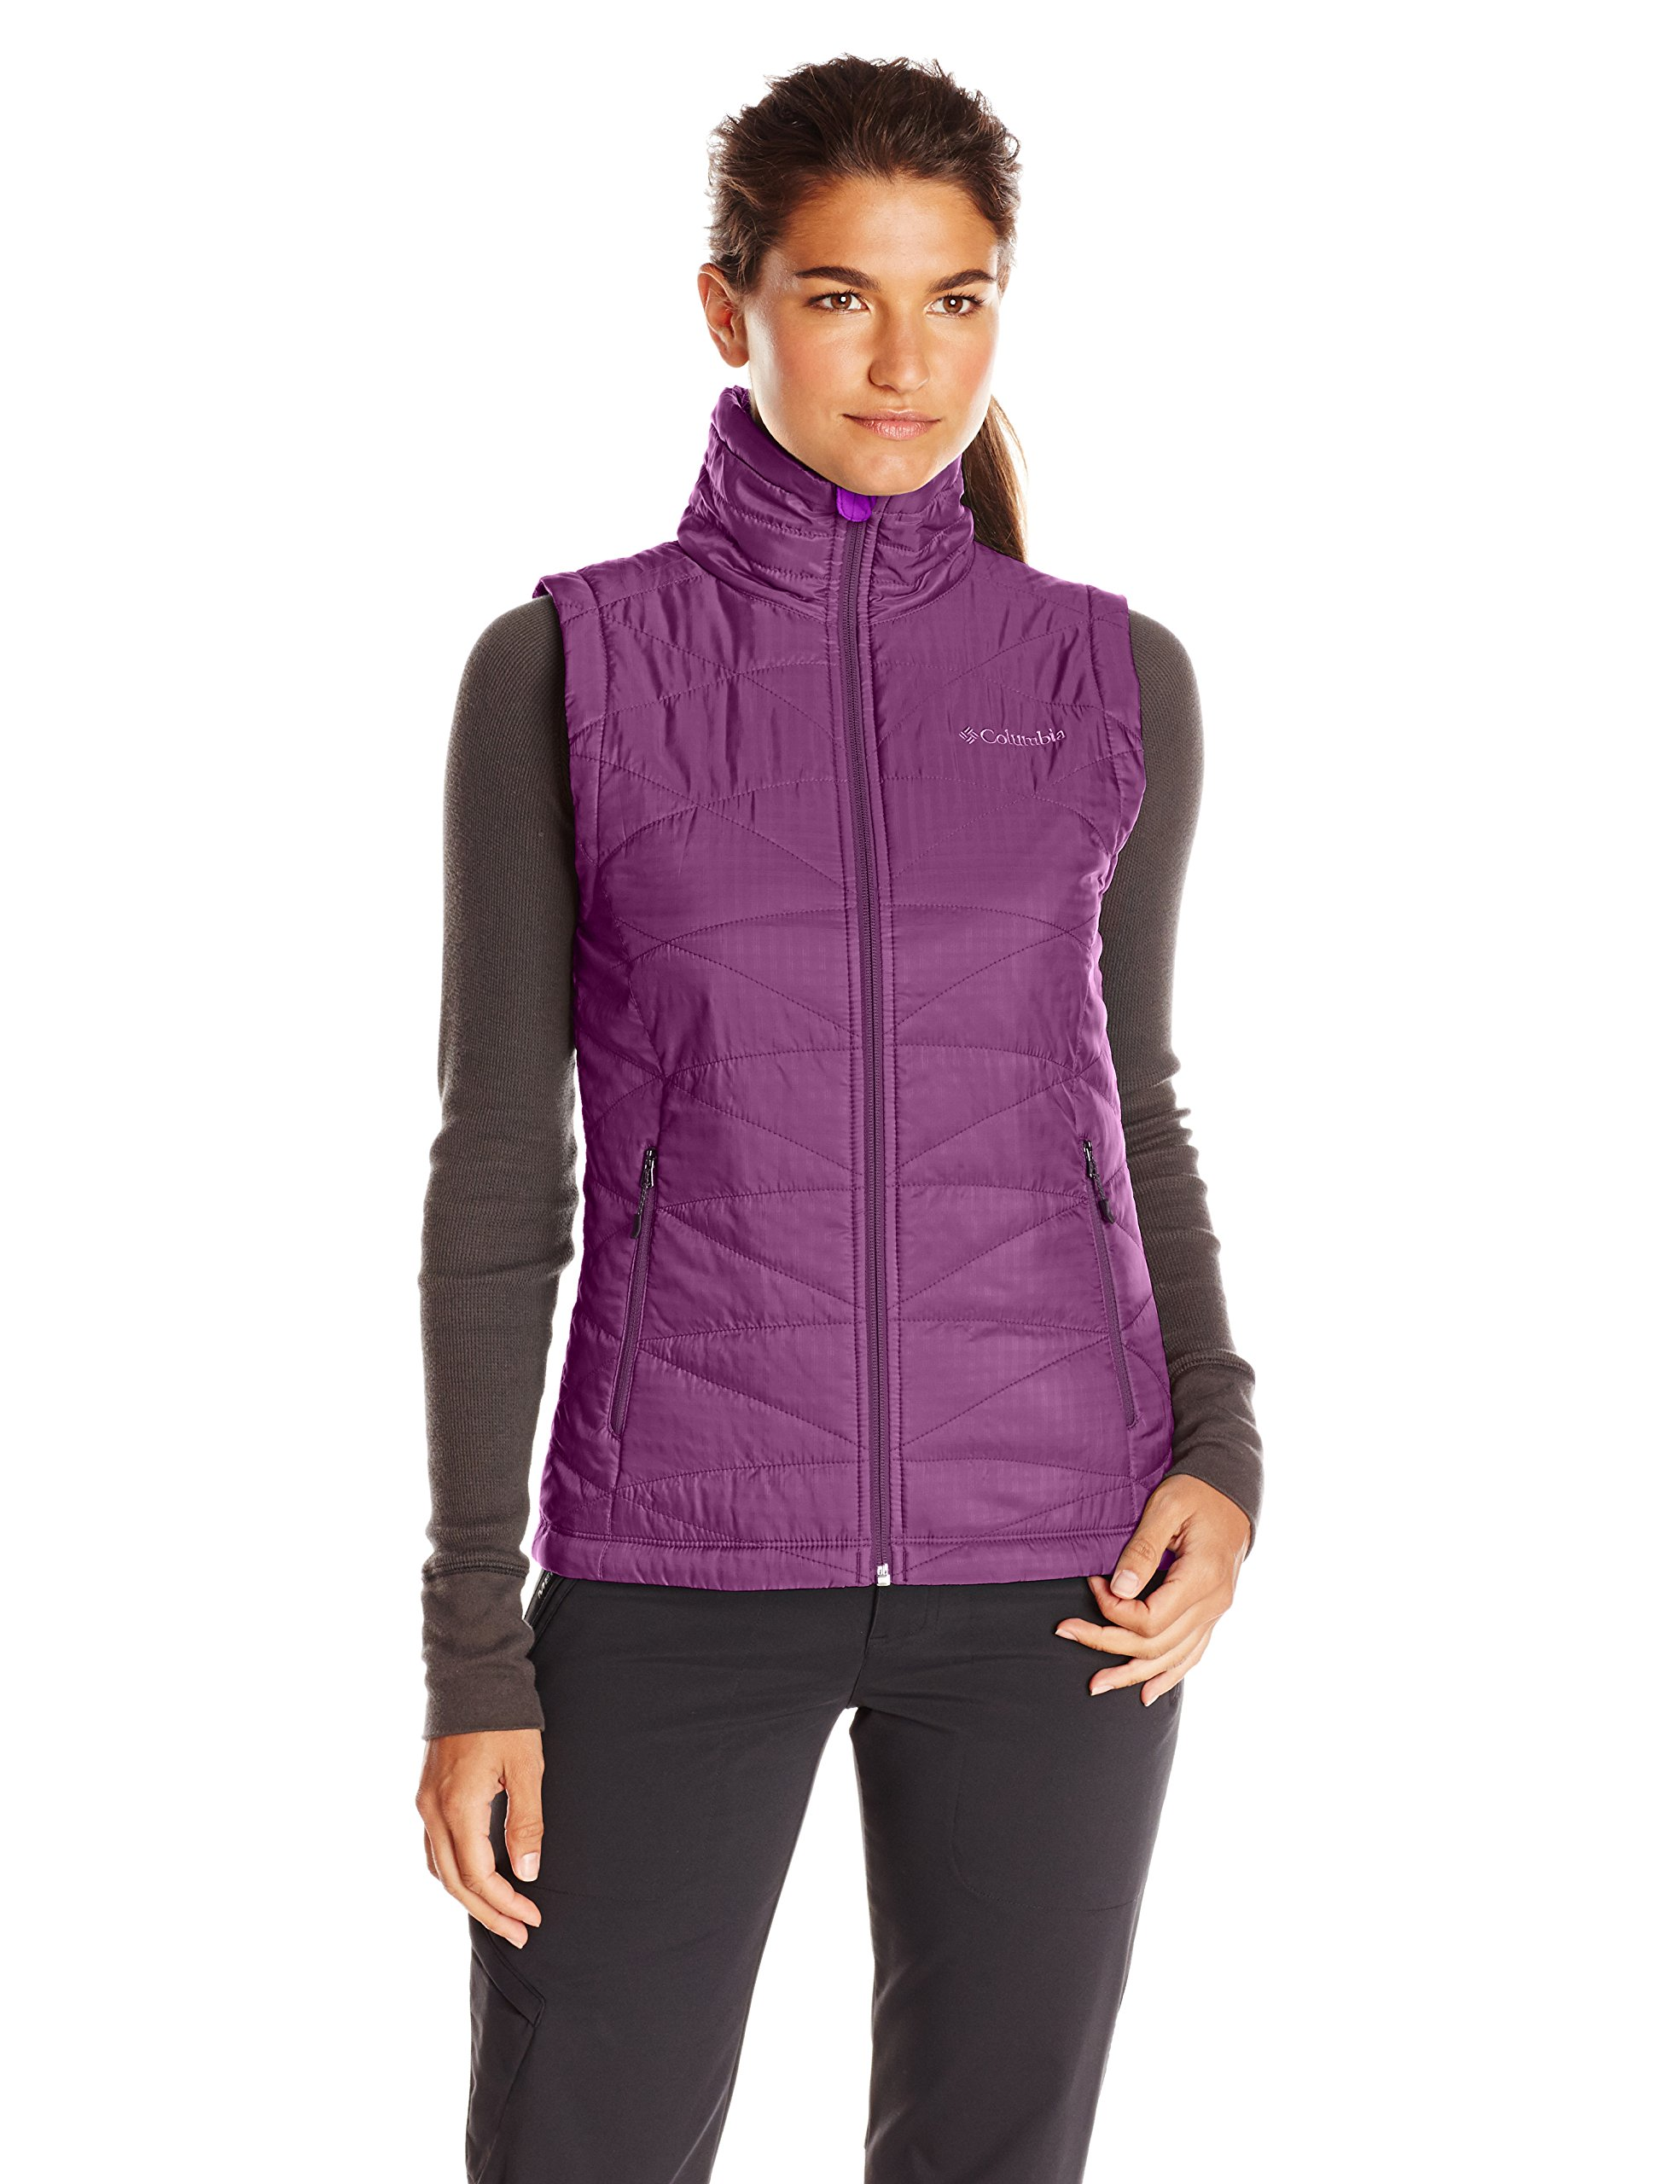 Columbia Women's Mighty Lite III Vest, Purple Dahlia, X-Large by Columbia